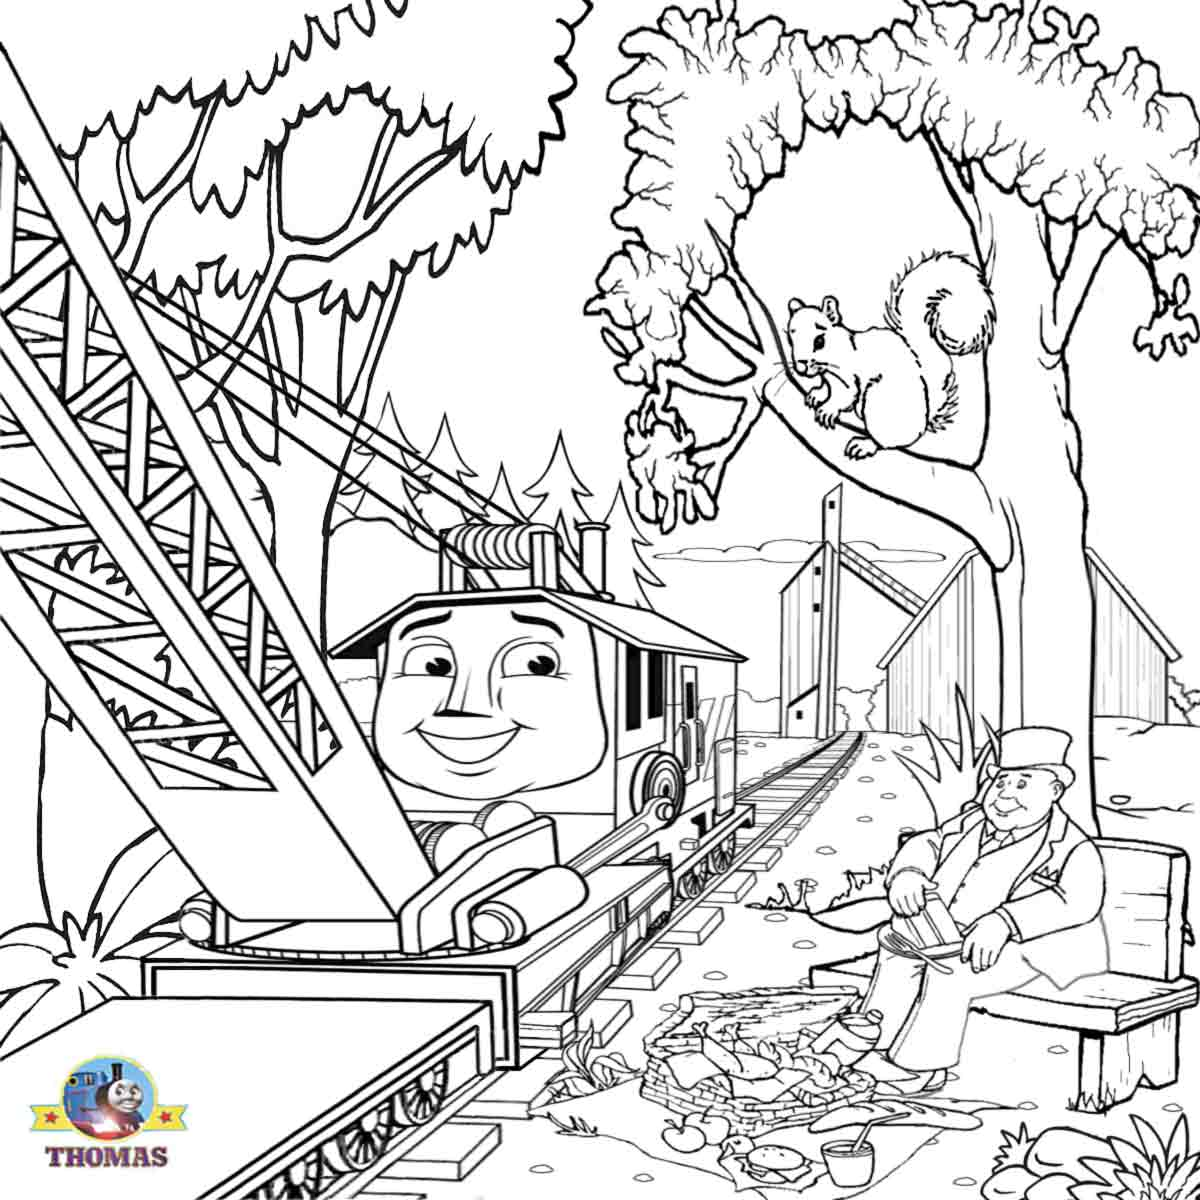 thomas and friends drawing pages free coloring pages printable pictures to color kids friends pages and thomas drawing